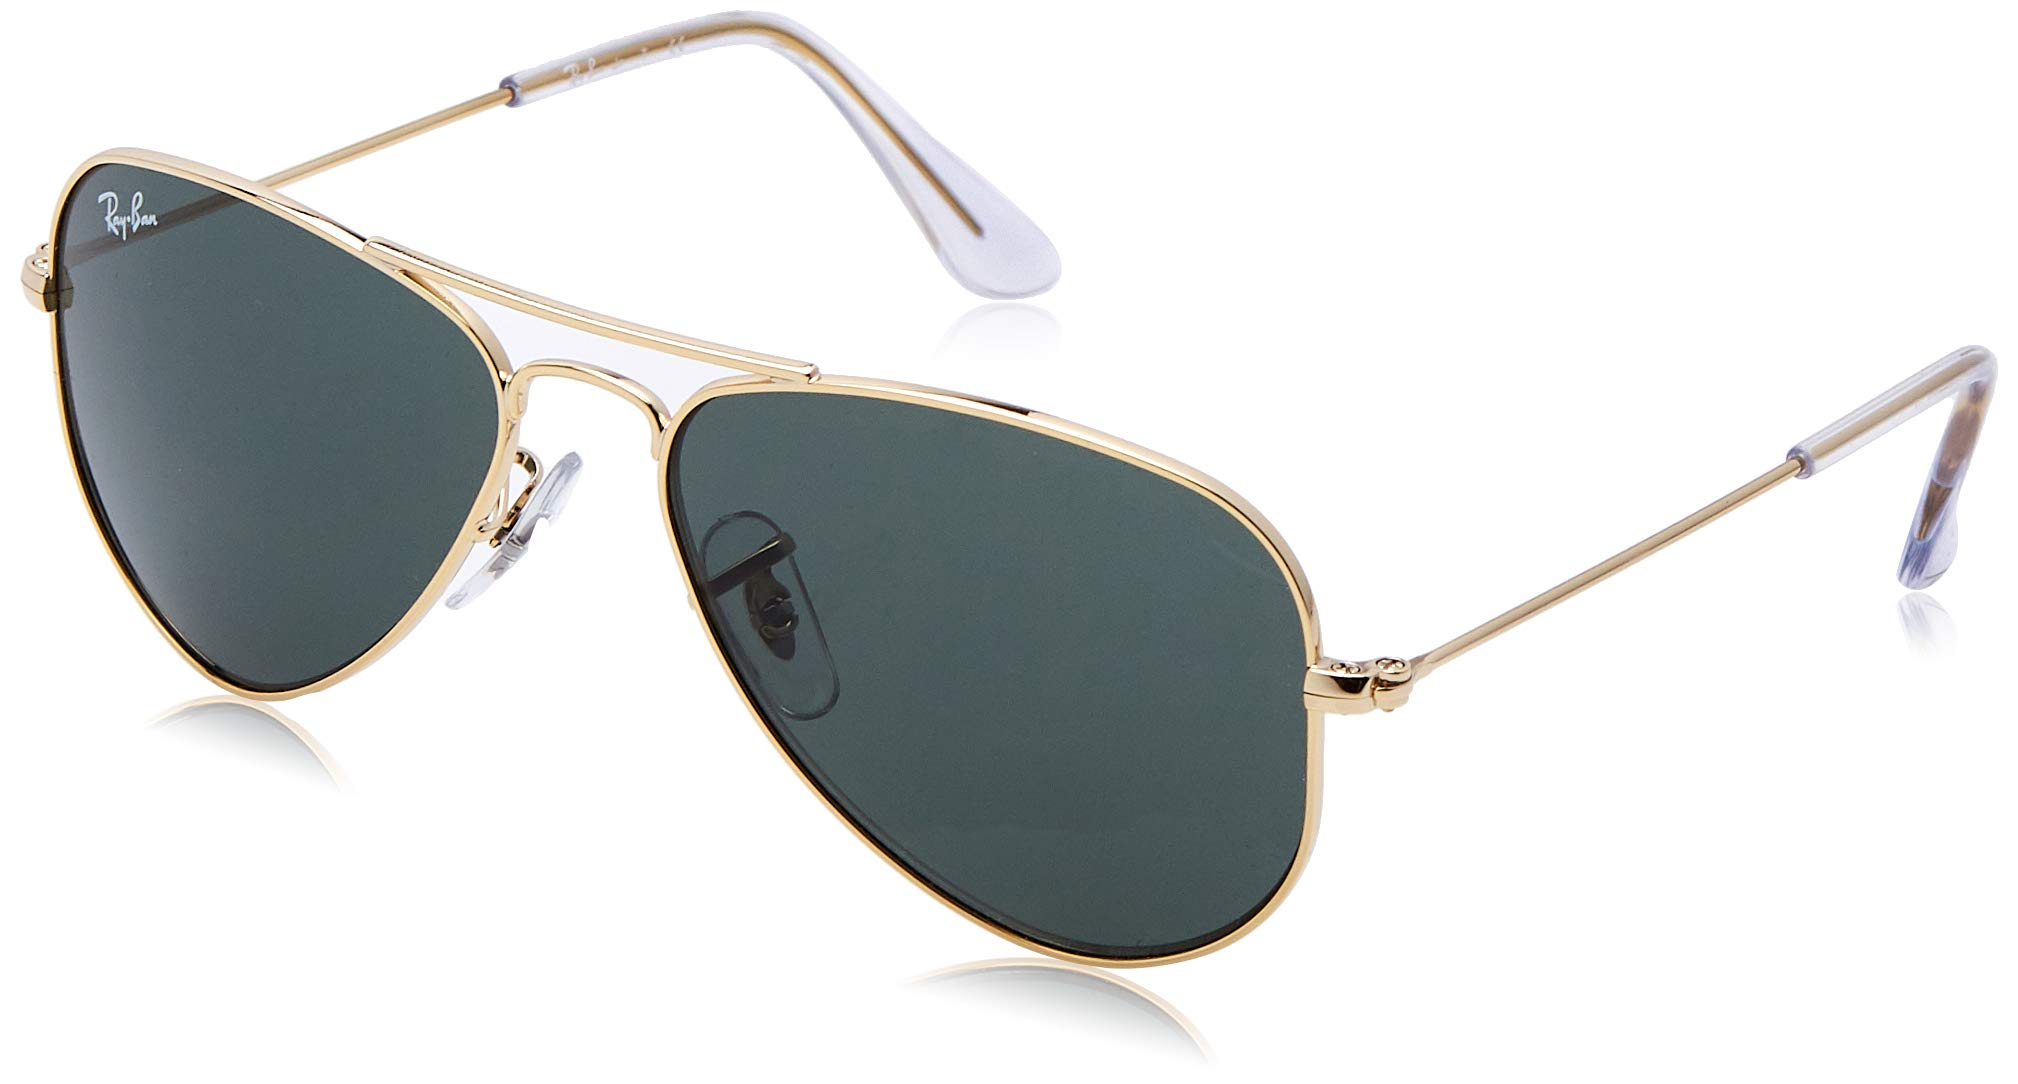 RAY-BAN JUNIOR Kids' RJ9506S Aviator Kids Sunglasses, Gold/Green, 52 mm by RAY-BAN JUNIOR